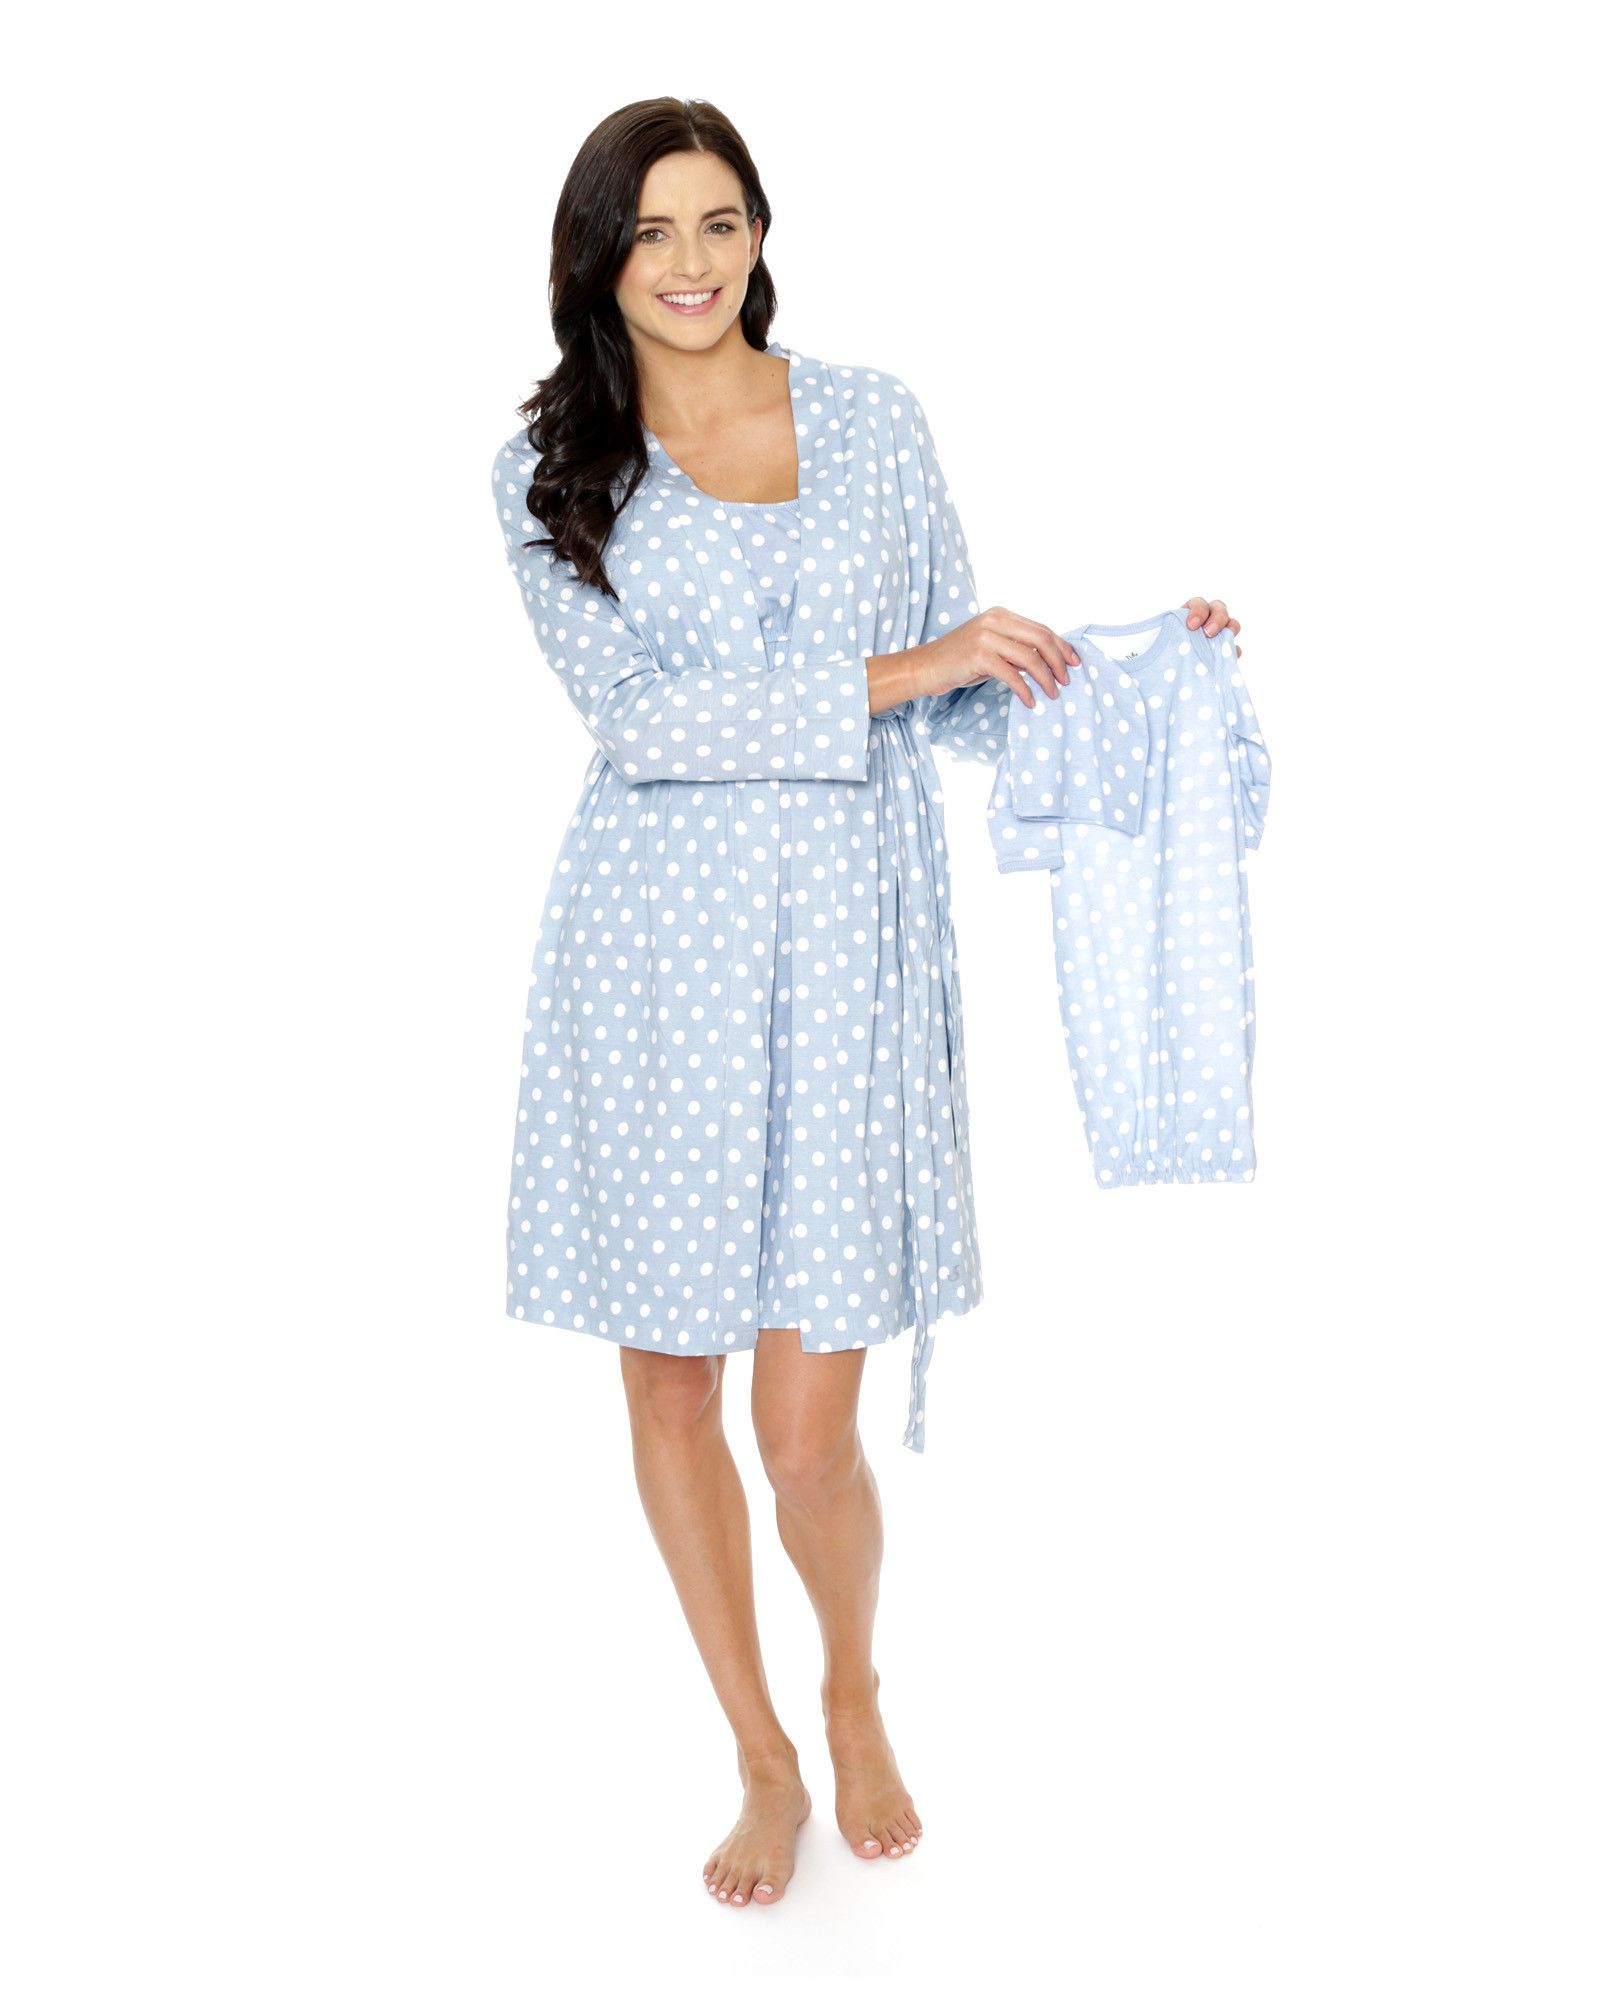 Excellent Nursing Gown And Robe Set Ideas - Images for wedding gown ...